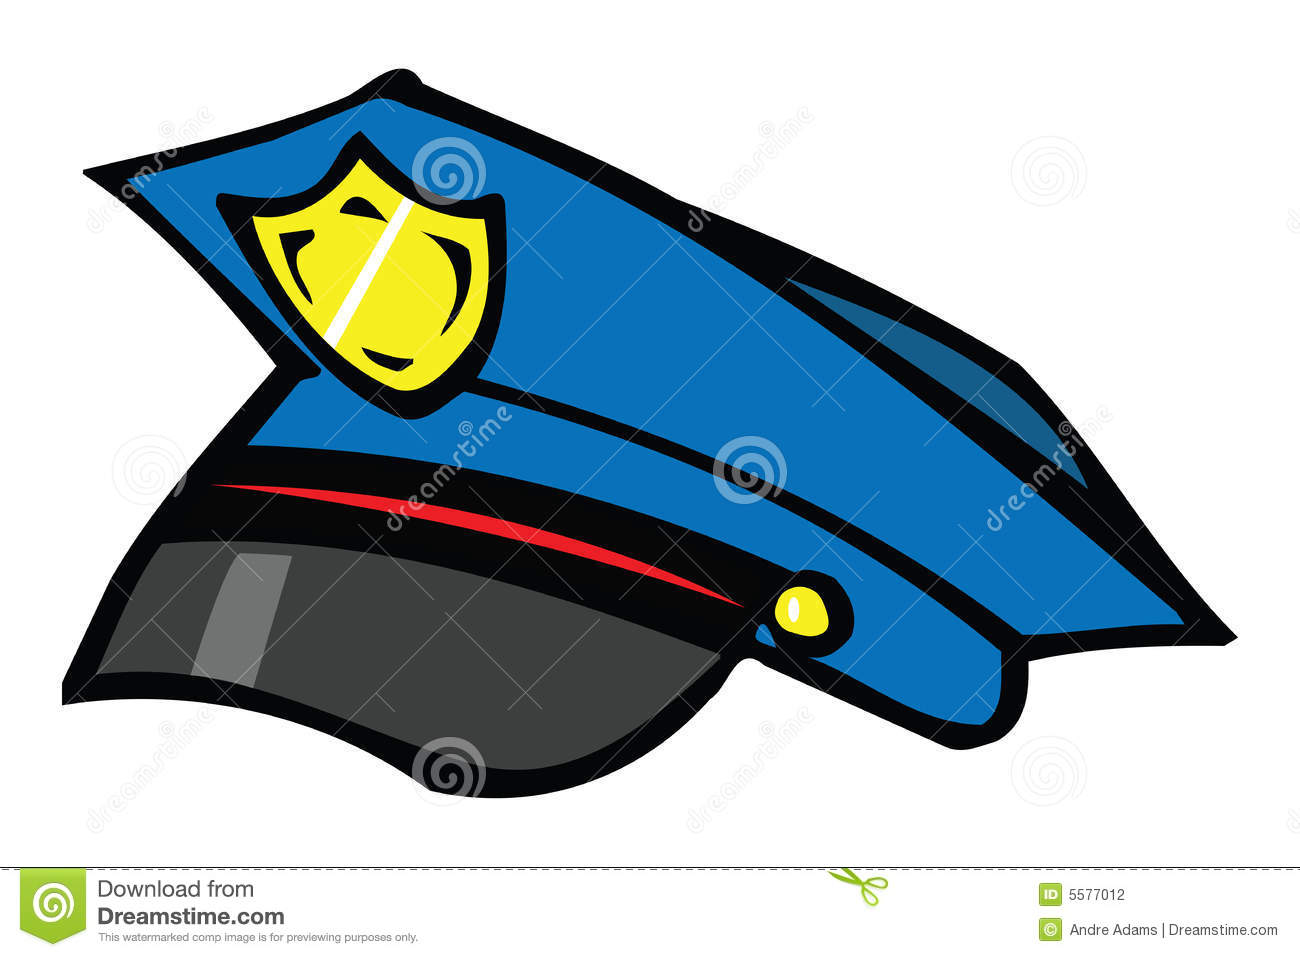 Police hat clipart jpg library library Police Hat Clipart - Clipart Kid jpg library library